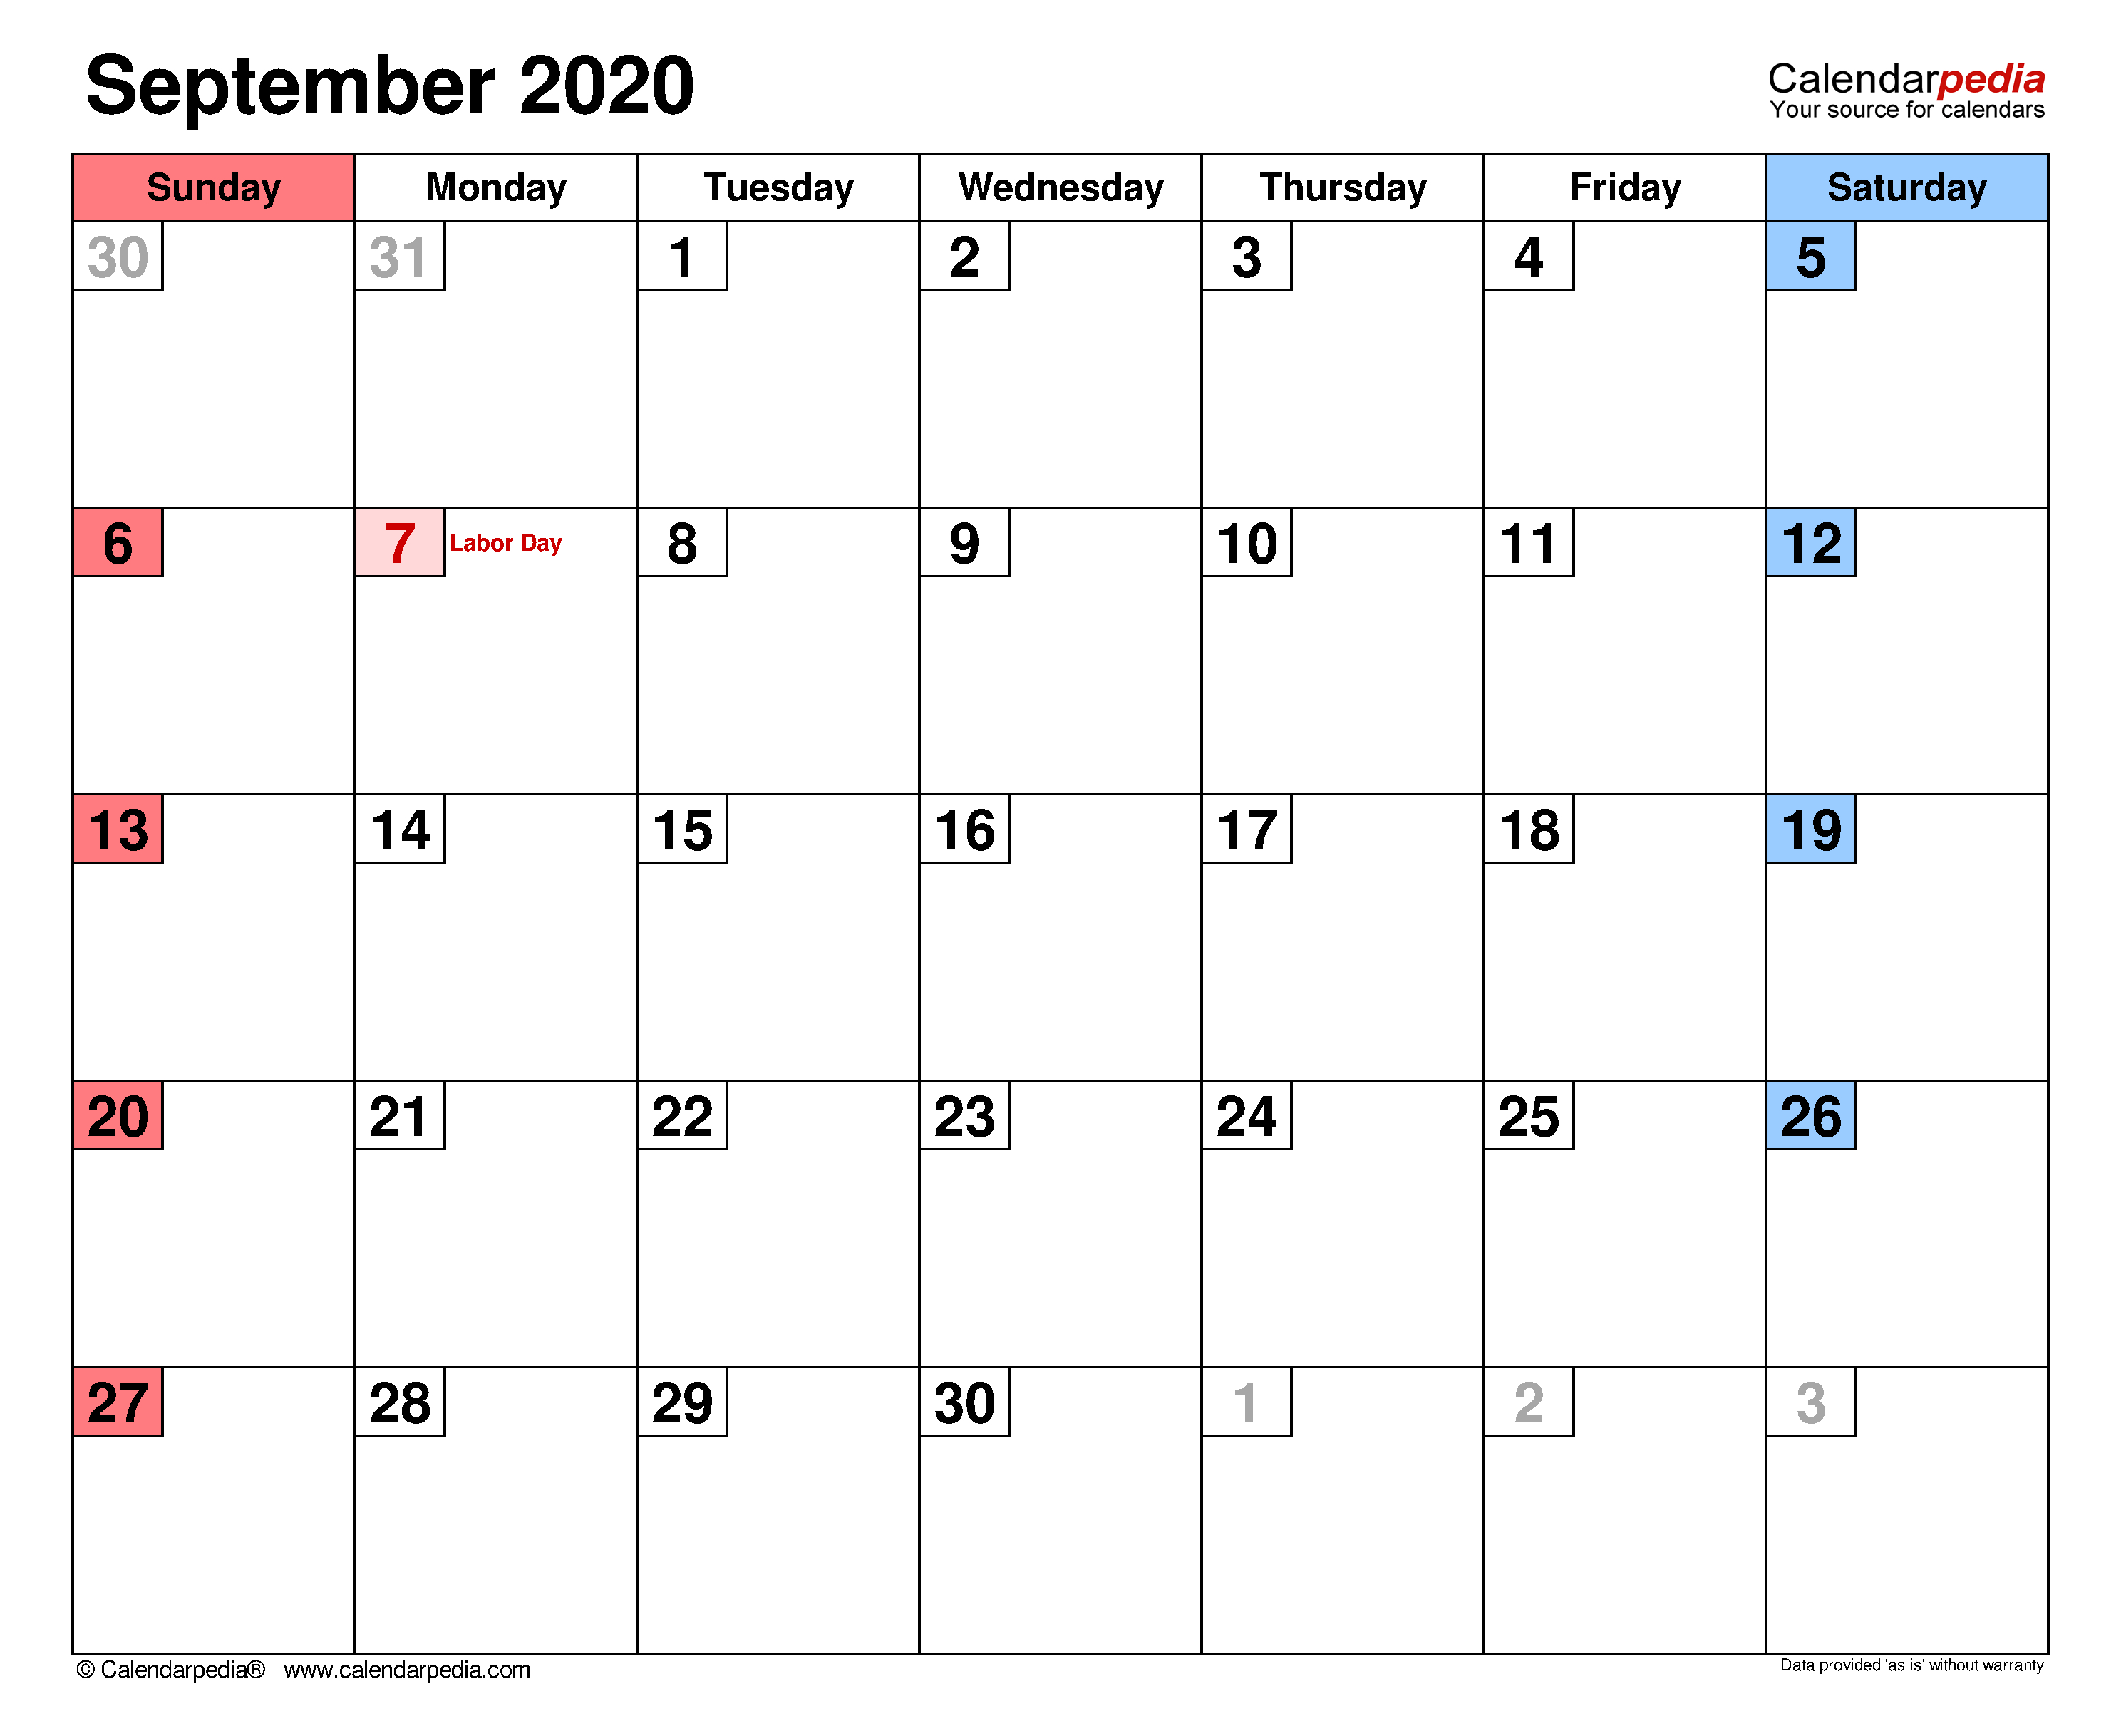 September 2020 - Calendar Templates For Word, Excel And Pdf with September Fill In Calendar 2020